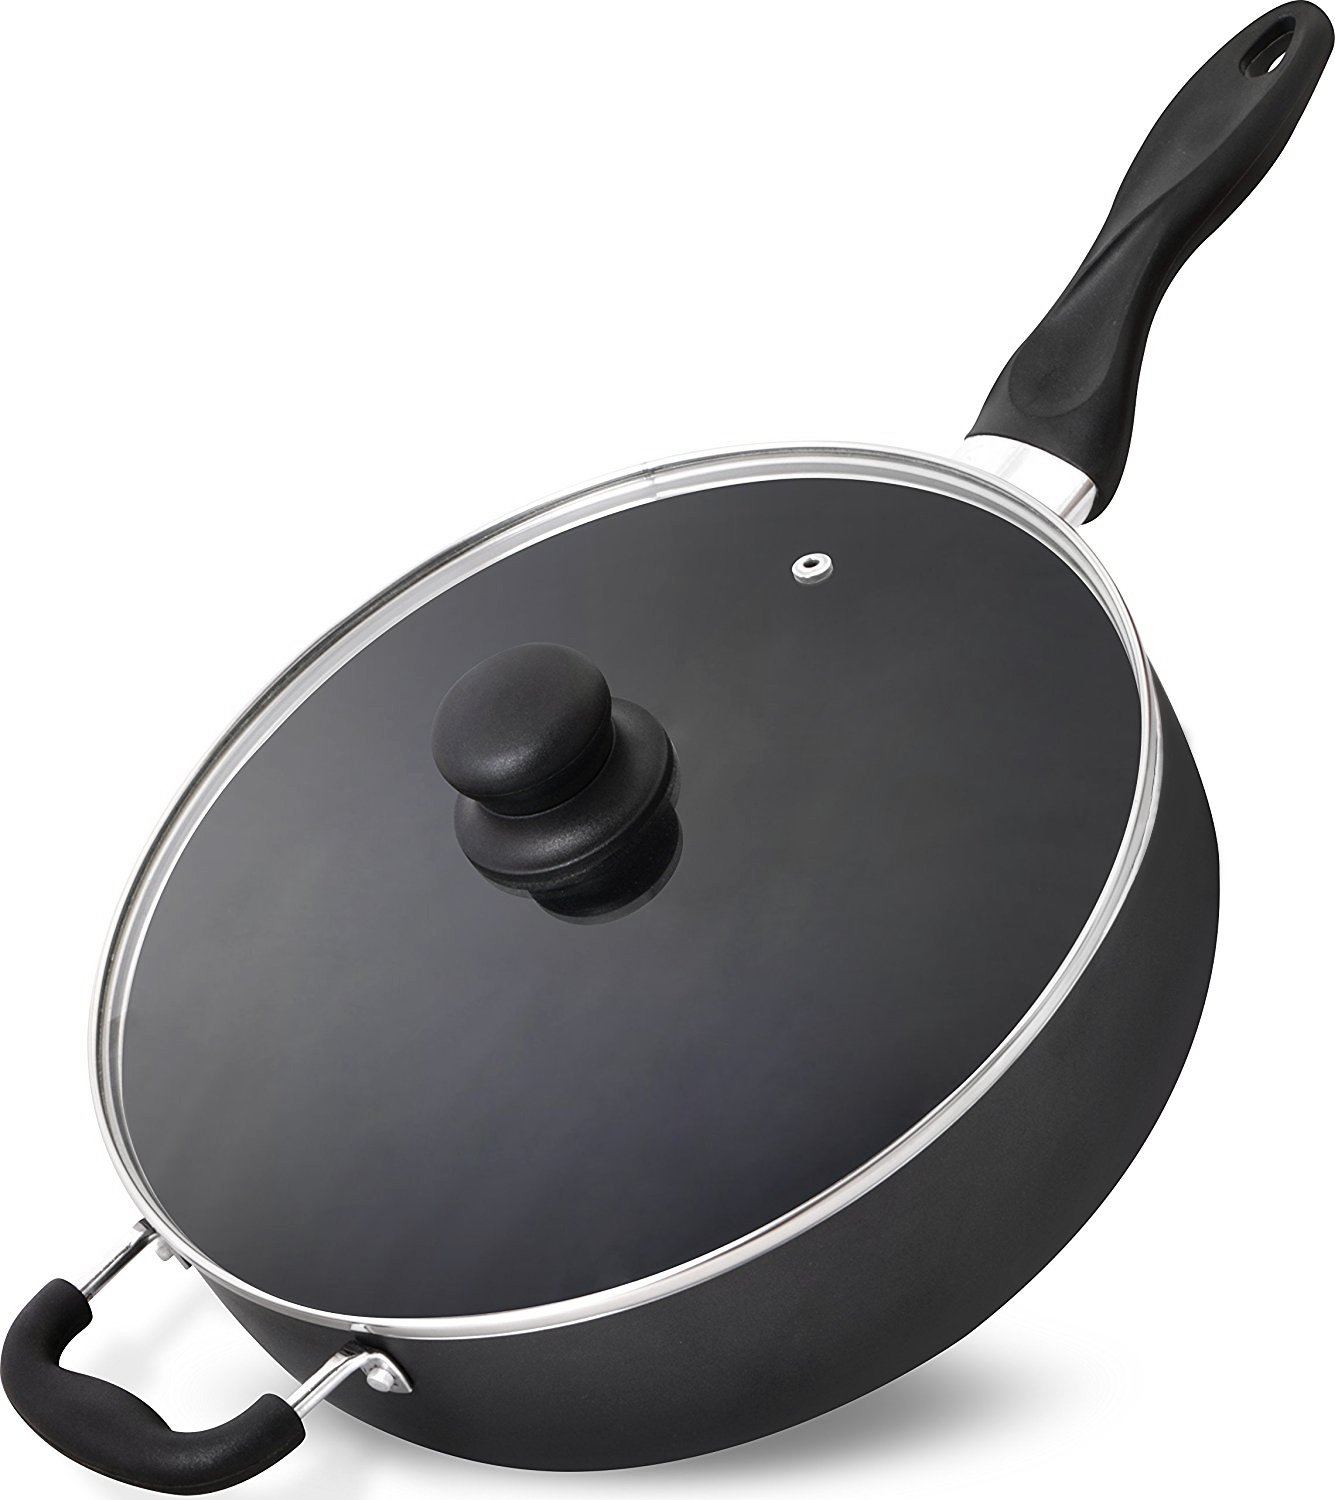 Utopia Kitchen - 11 Inch Nonstick Deep Frying Pan - 4.6 Quart Sauté Pan - Aluminum Jumbo Cooker with Glass Lid - Dishwasher Safe